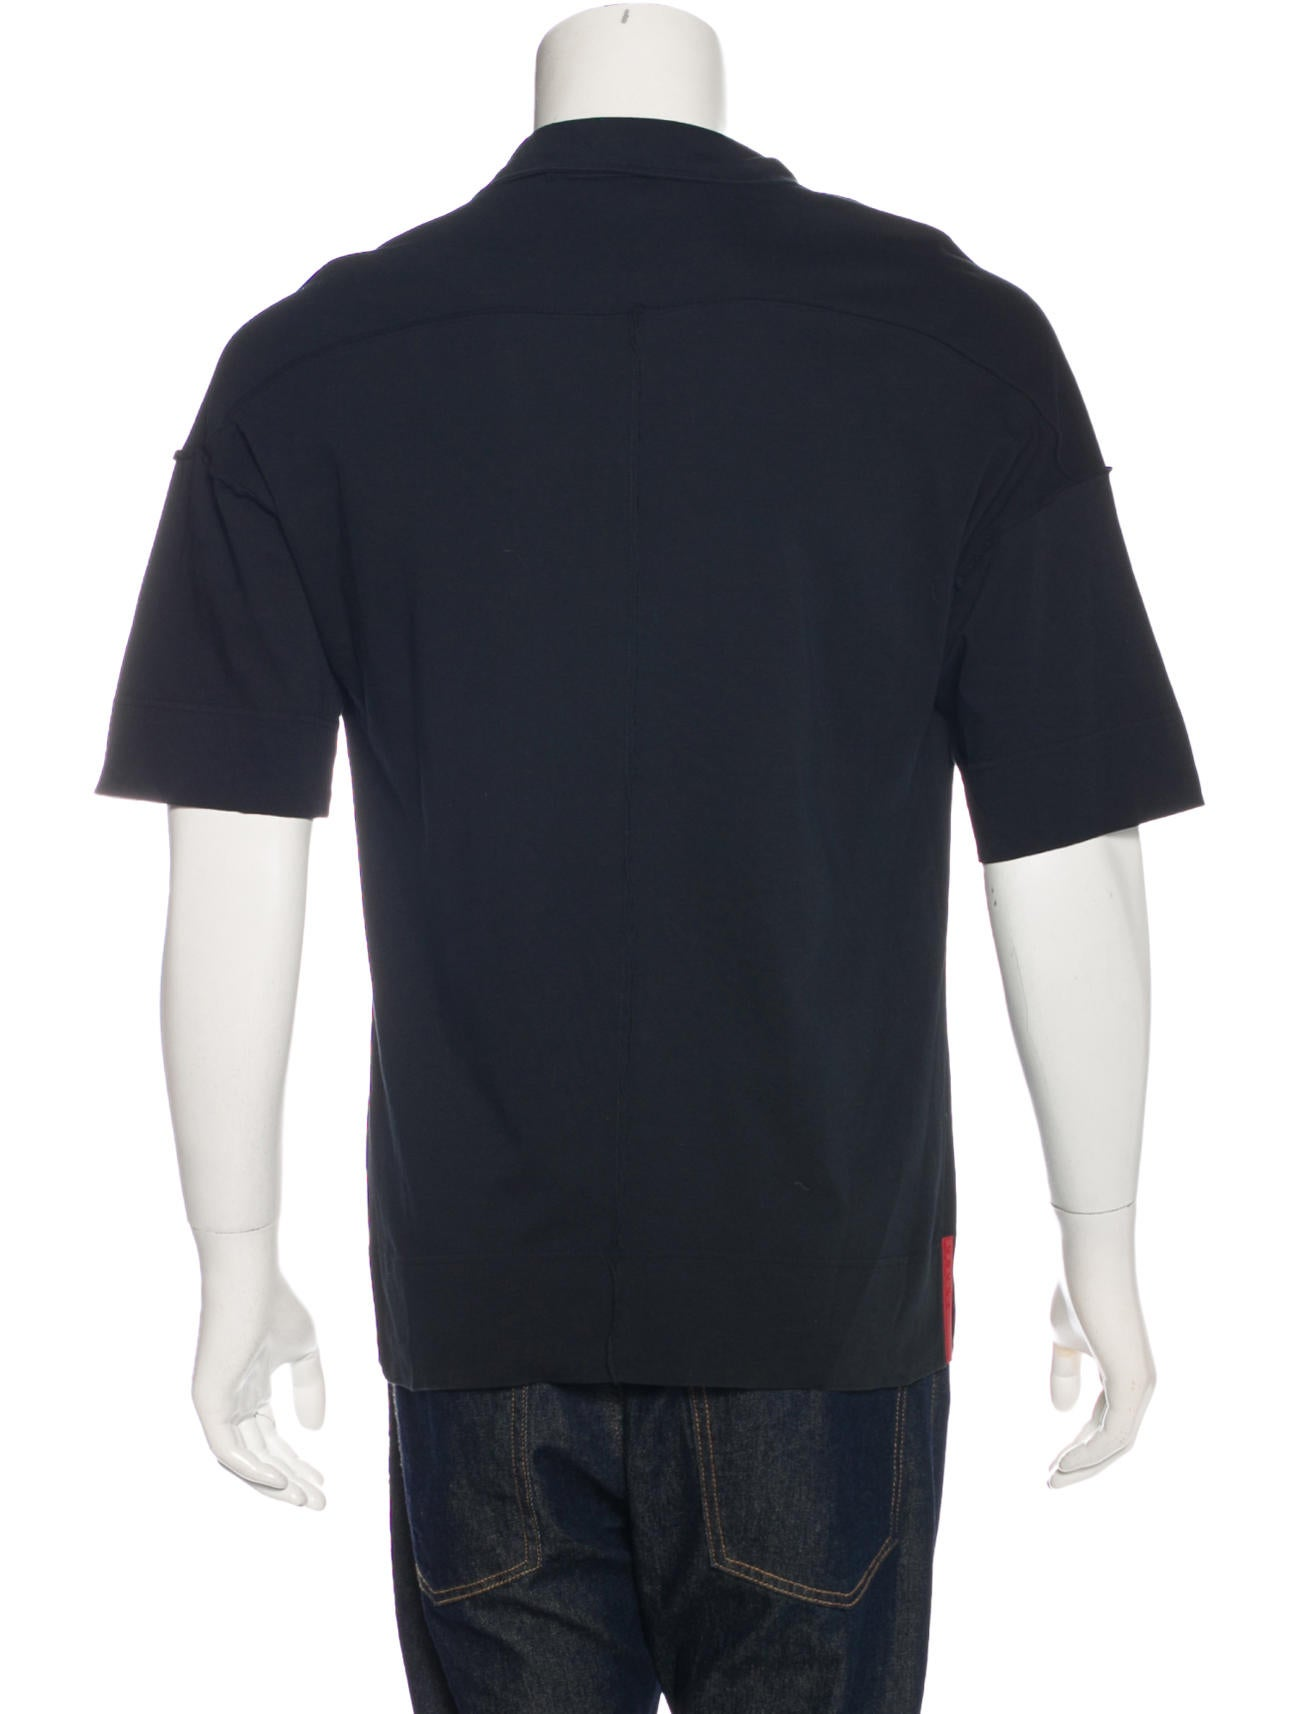 Shop for men's polo shirts & long & short sleeve knit shirts online at free-cabinetfile-downloaded.ga FREE shipping on orders over $